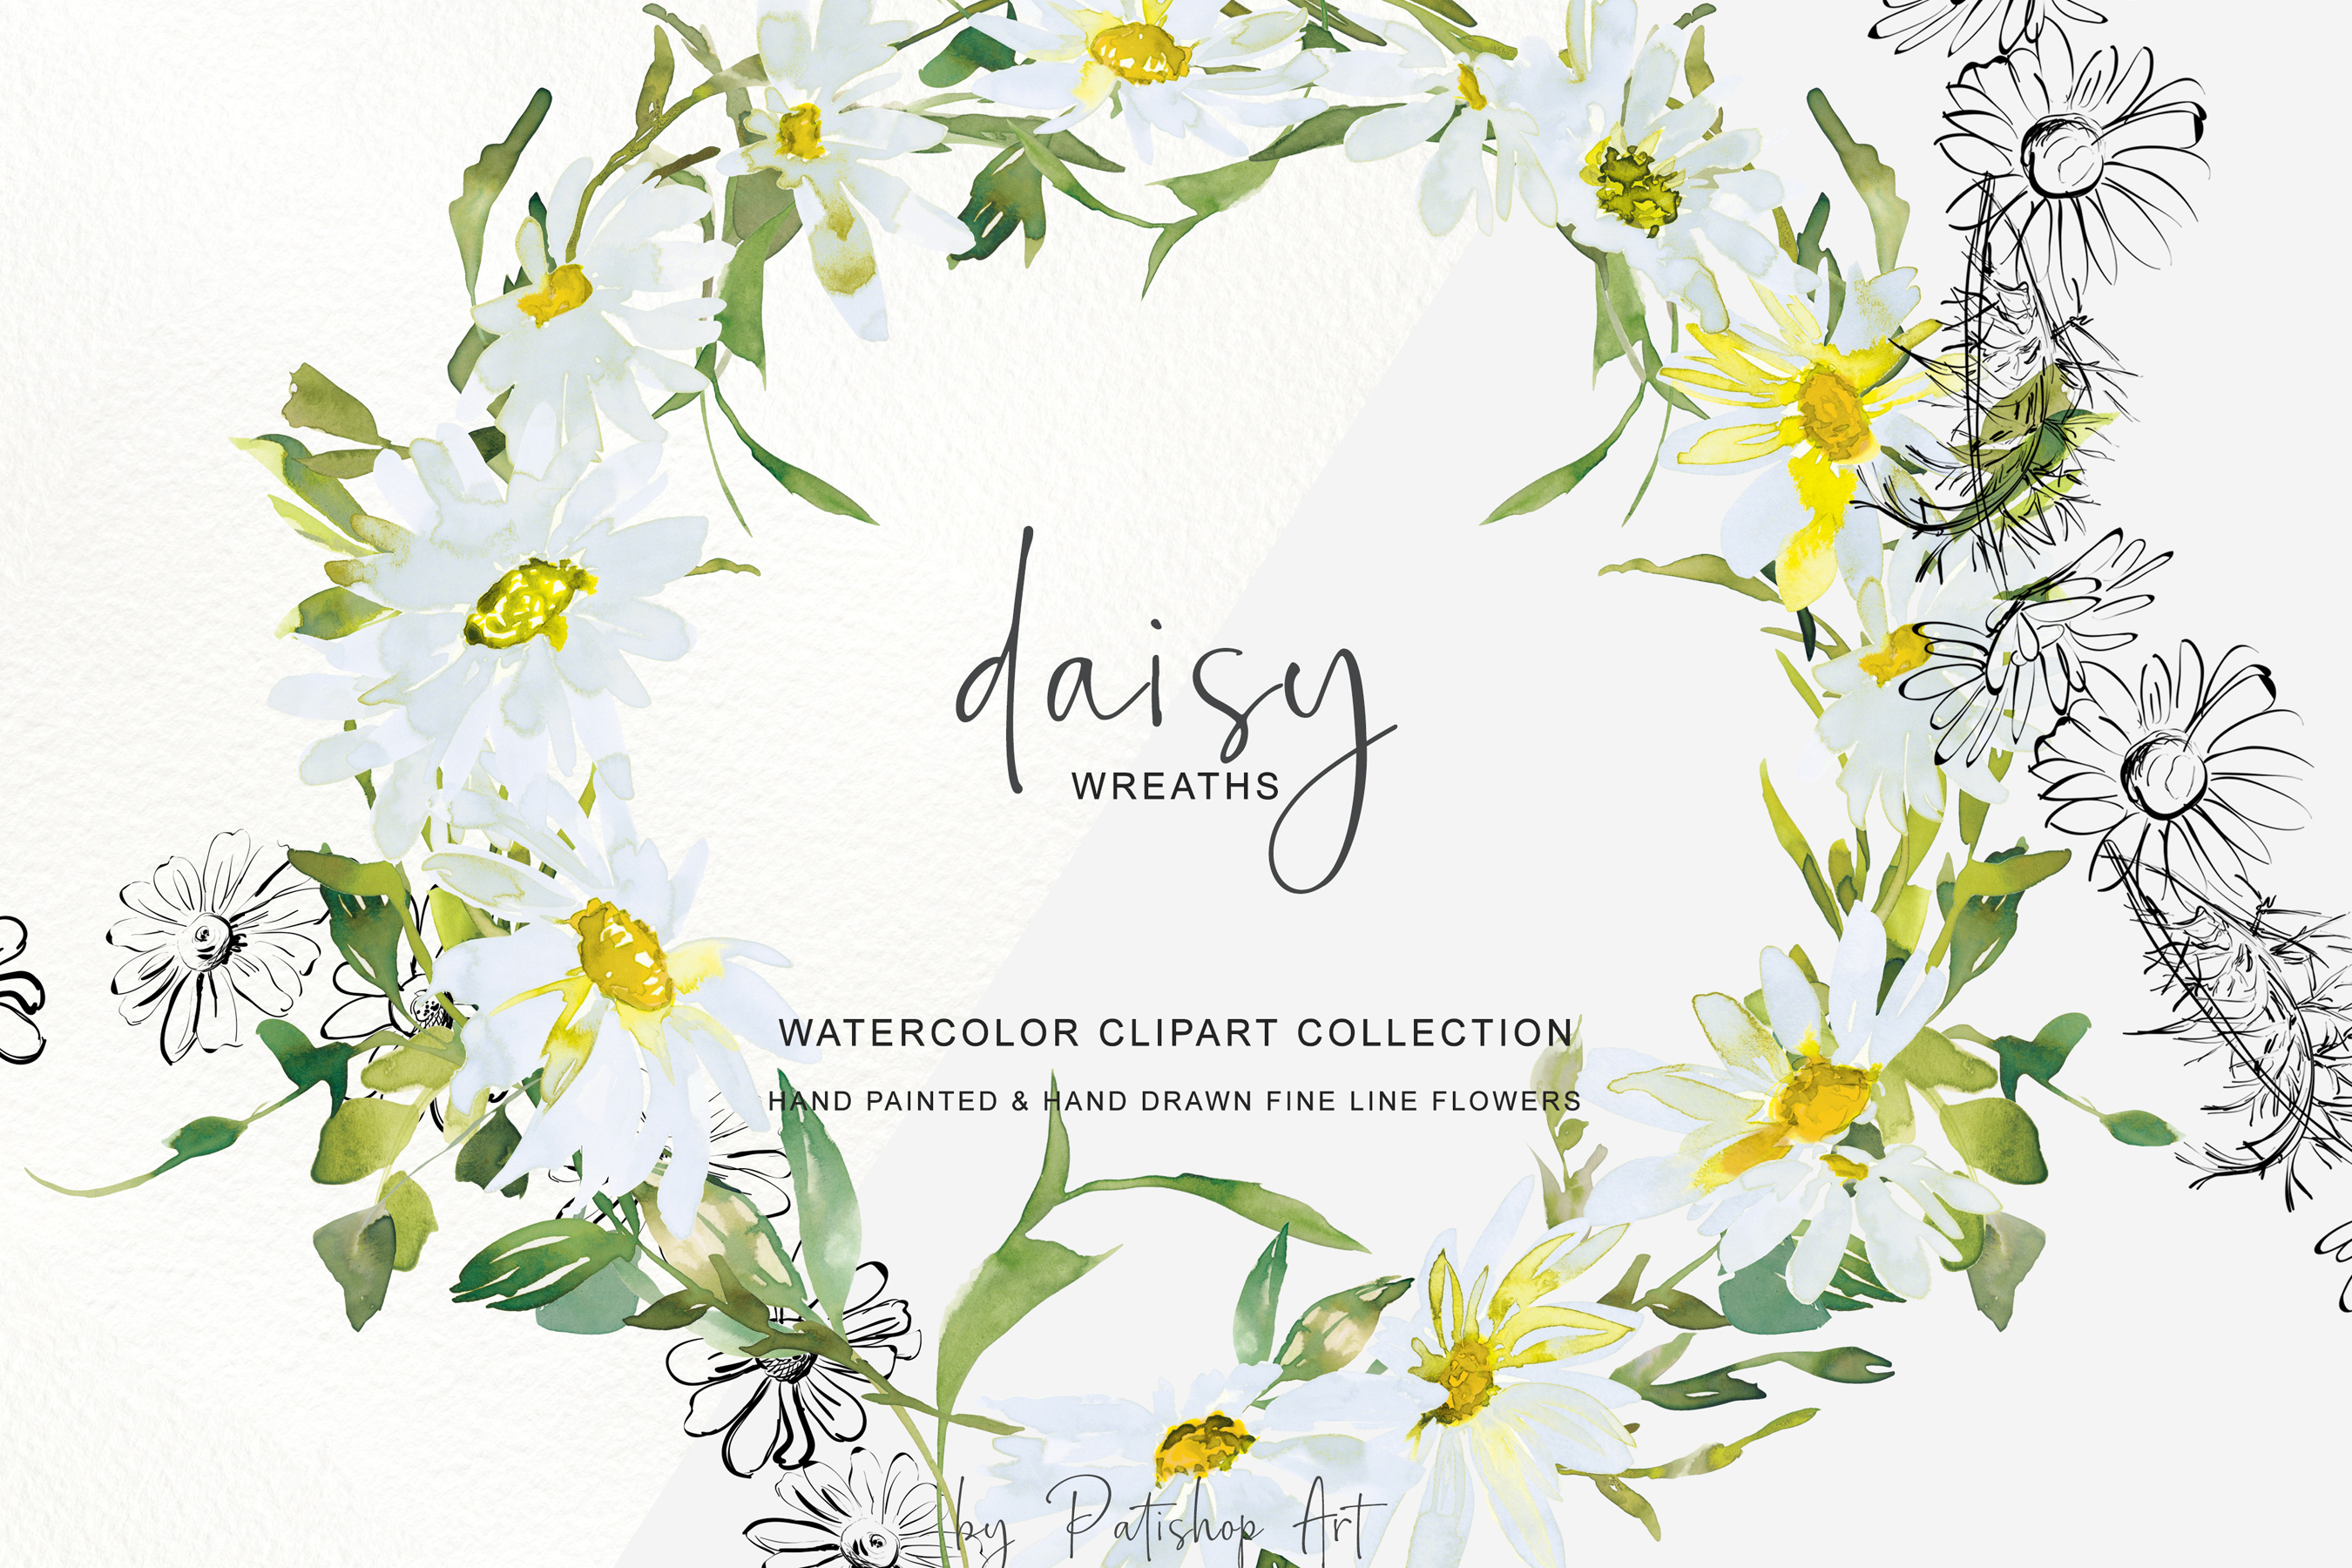 Watercolor Daisy Wreath Clip Art example image 3